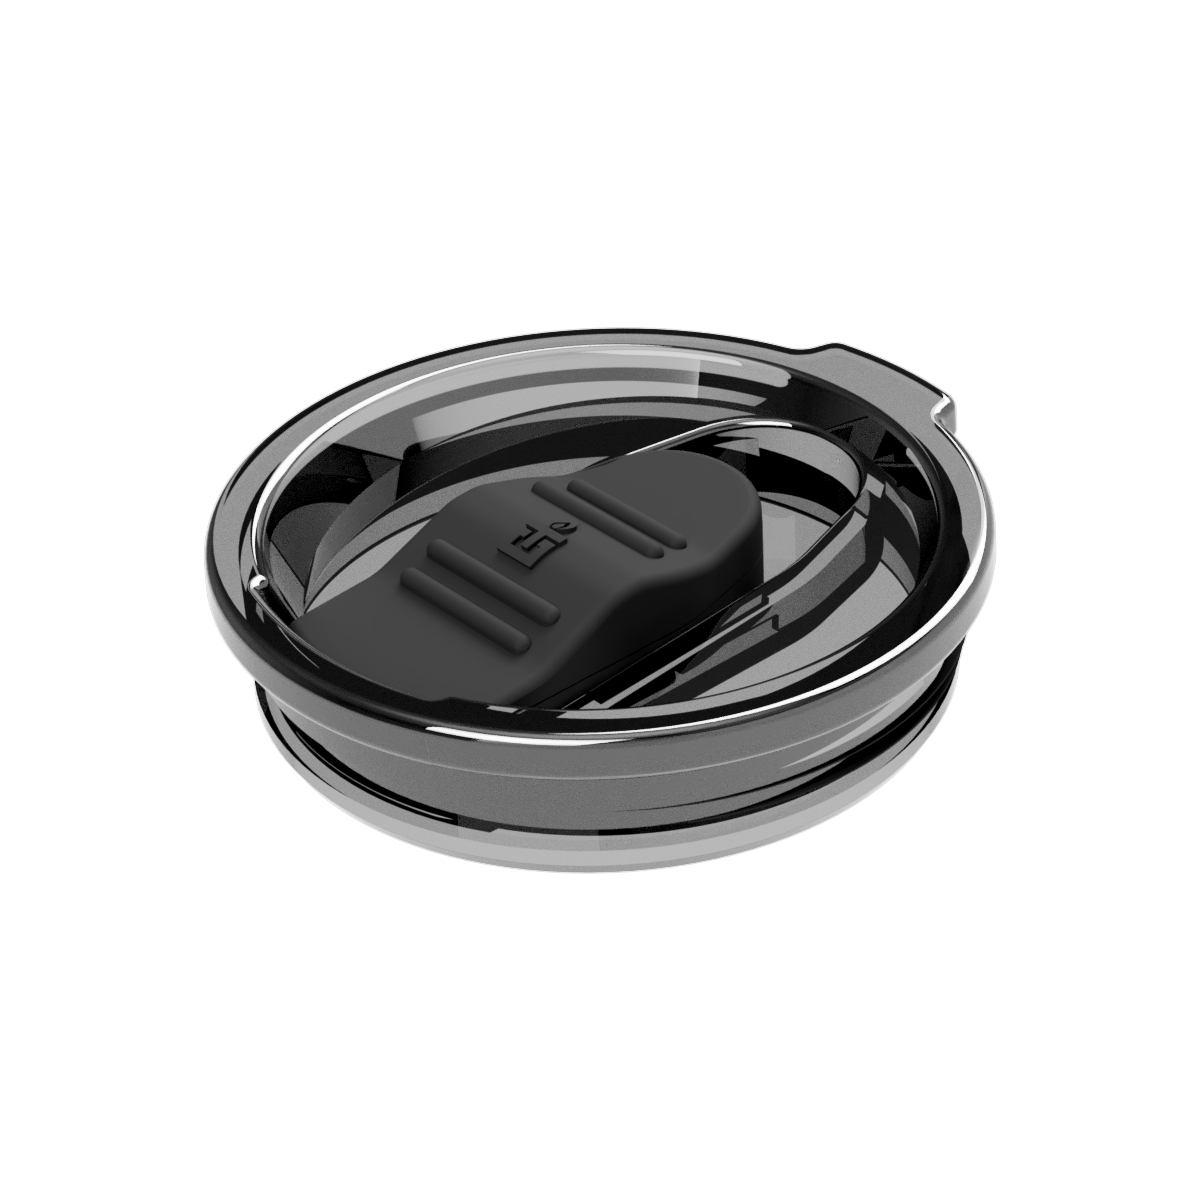 20oz Tumbler Slide Lid - TEMPERCRAFT